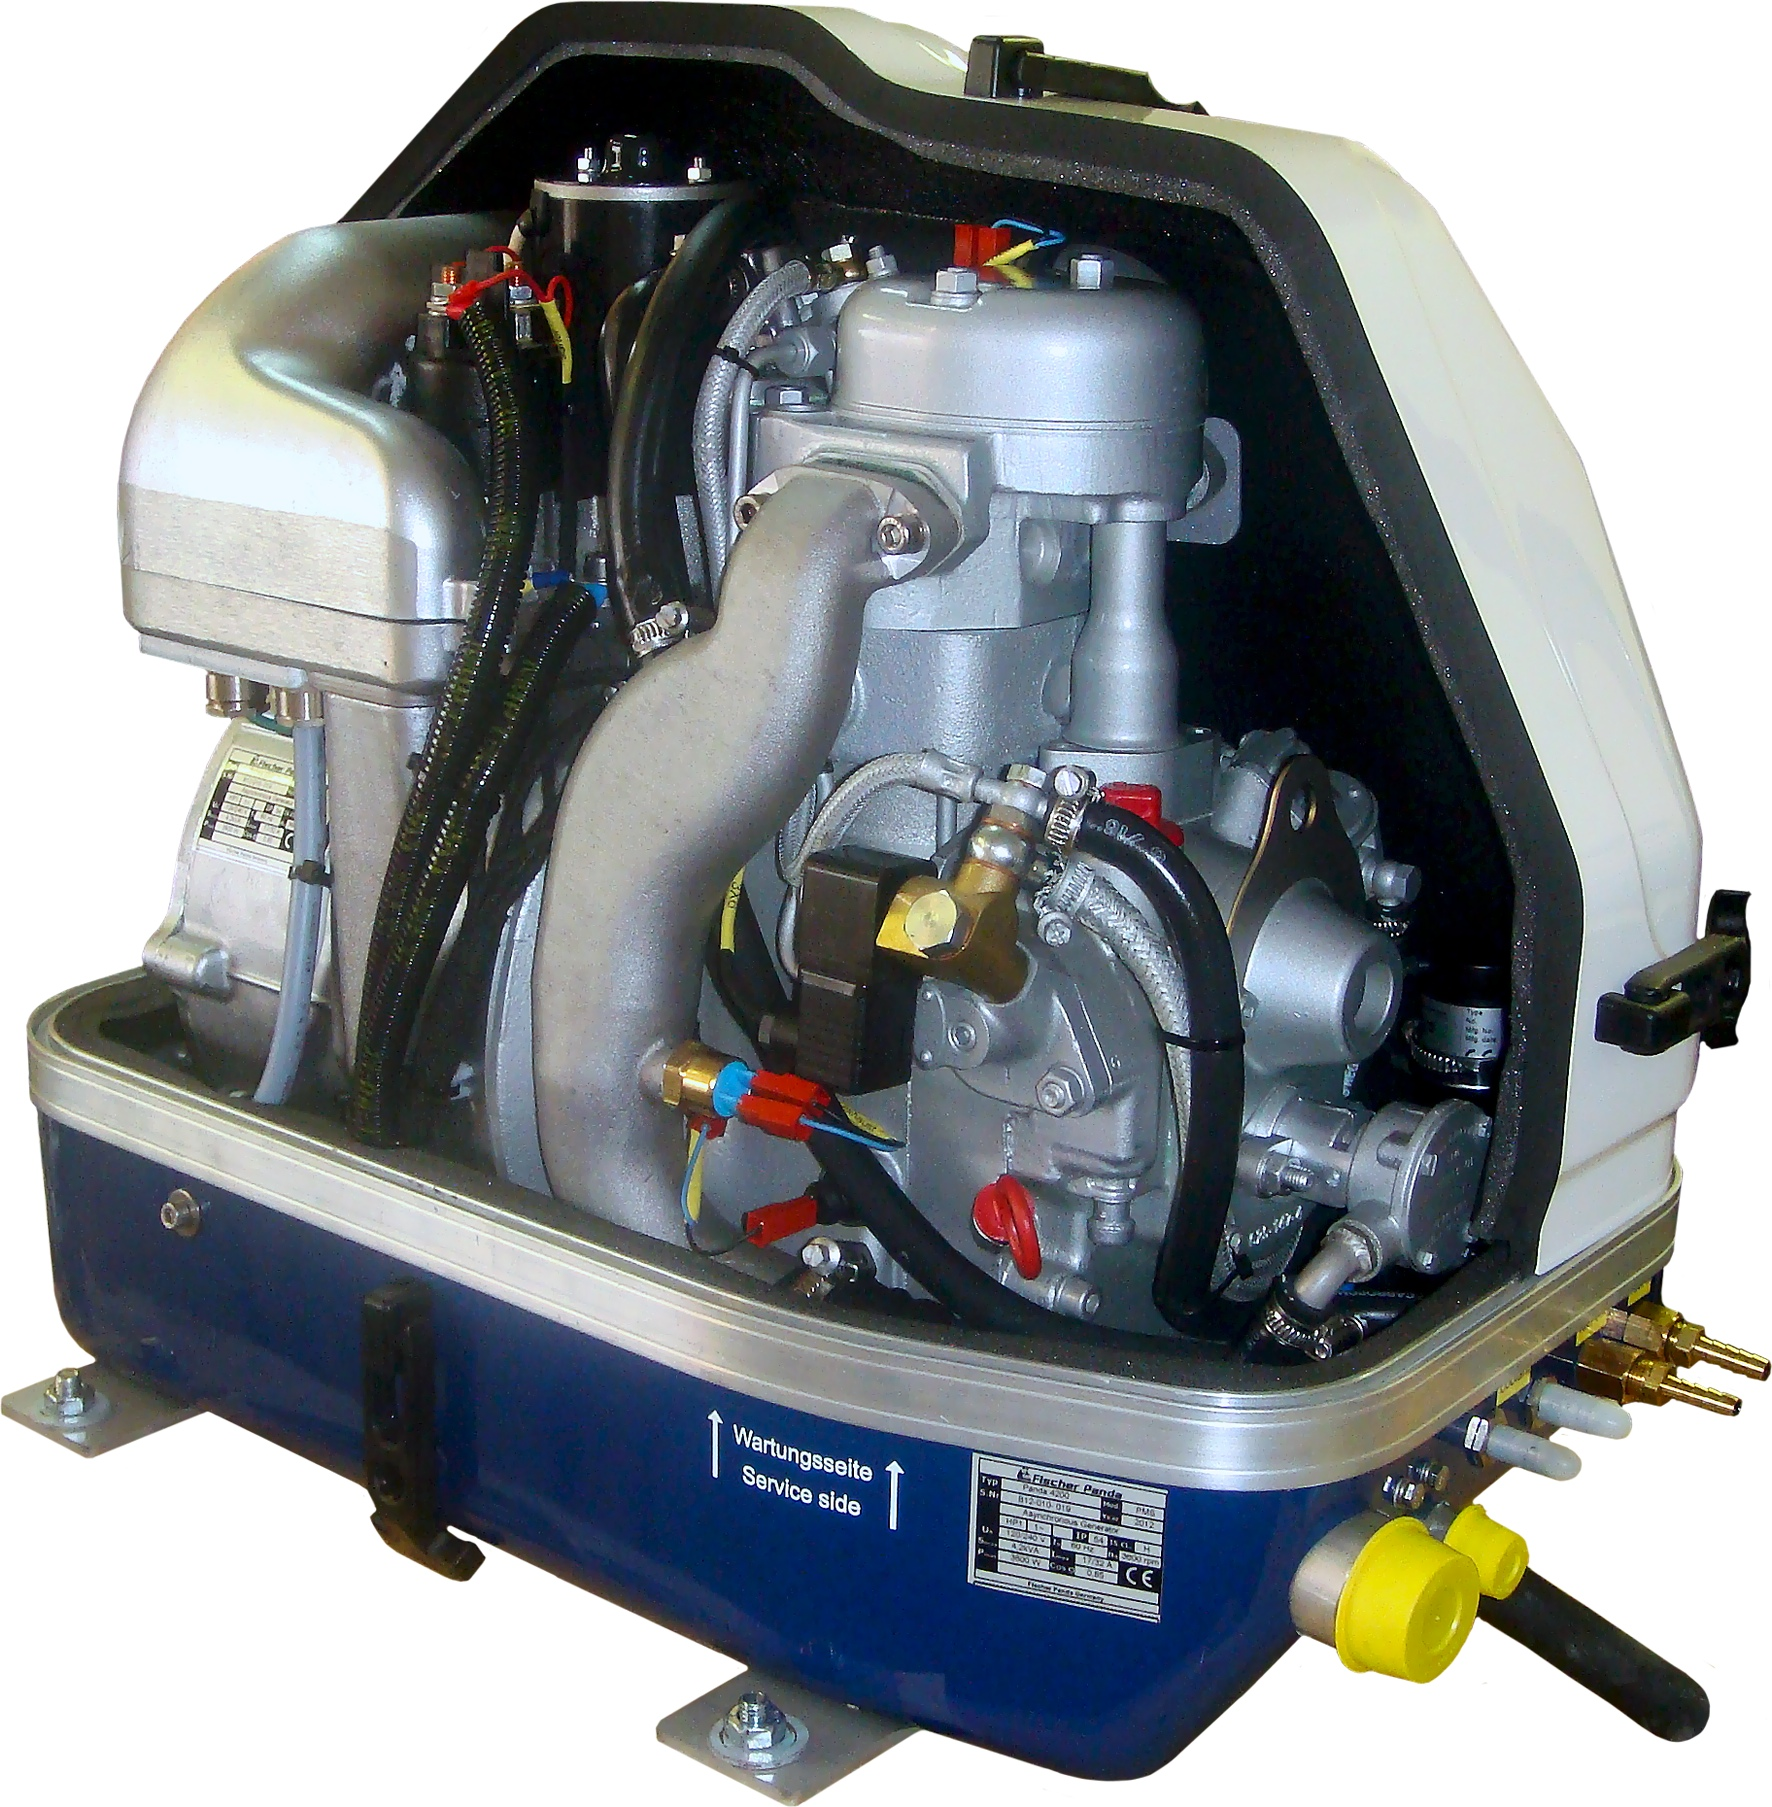 Fischer Panda Generators Announces the New 4200 ECO AC Marine